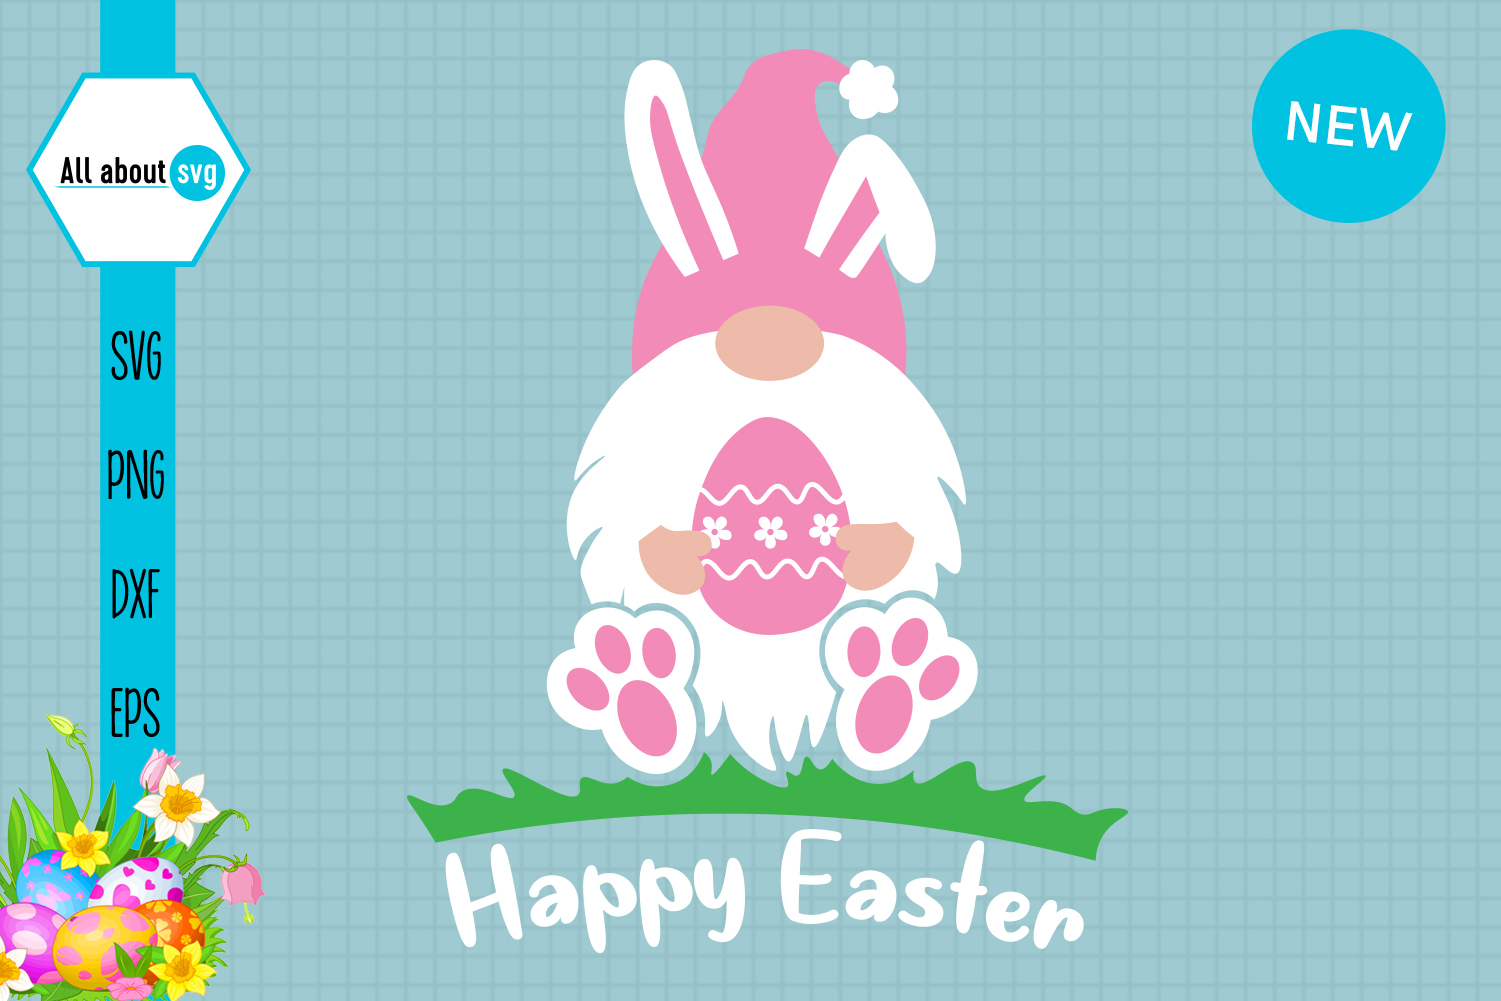 Download Free Easter Bunny Gnome Pink Graphic By All About Svg Creative Fabrica for Cricut Explore, Silhouette and other cutting machines.